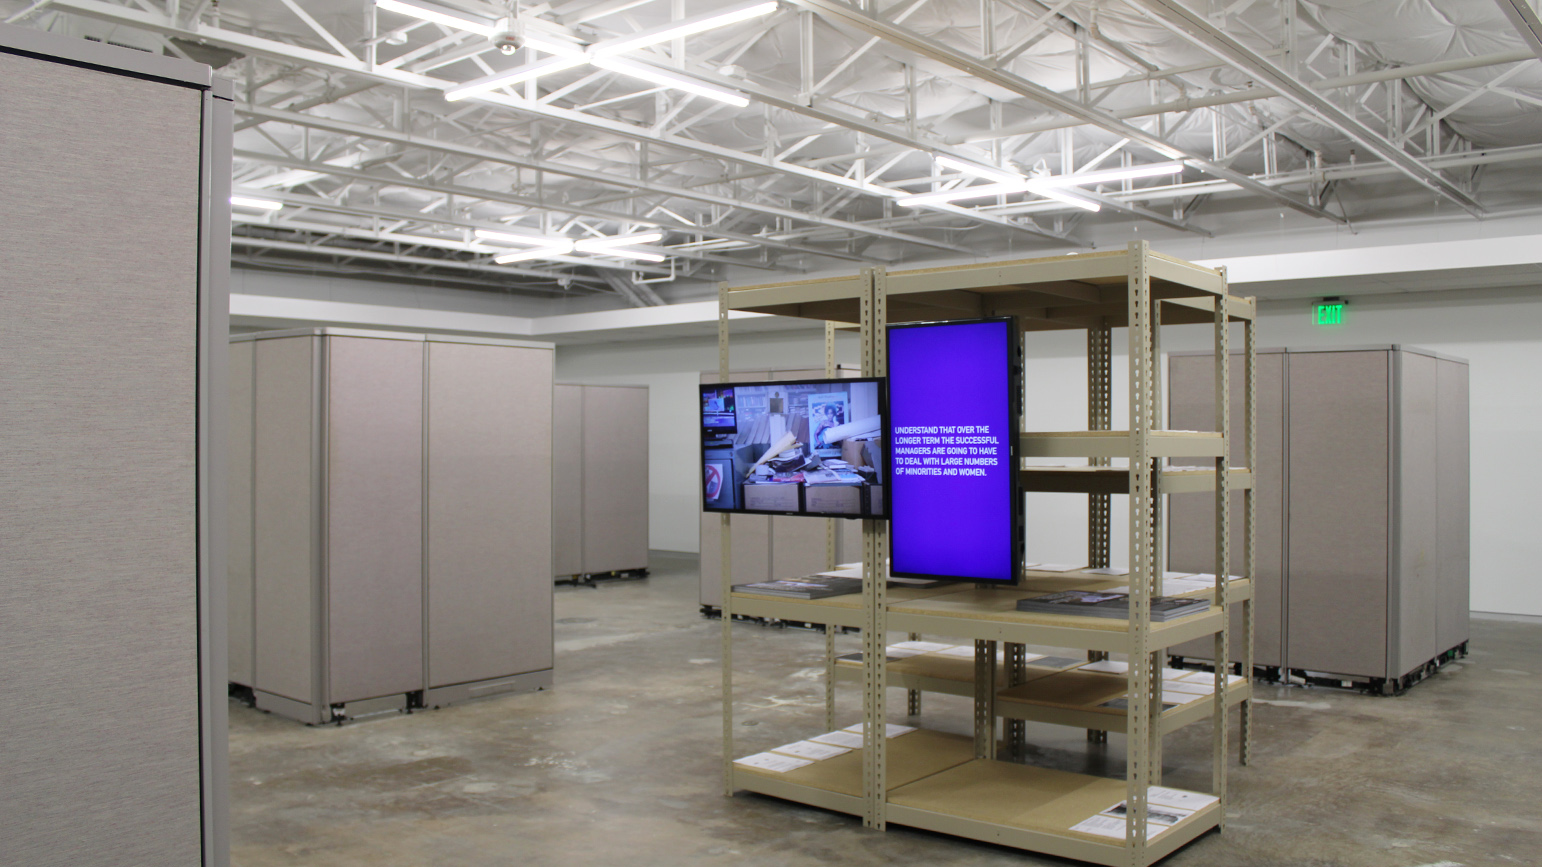 Gallery installation with cubicles, metal shelving, and two flat screen televisions